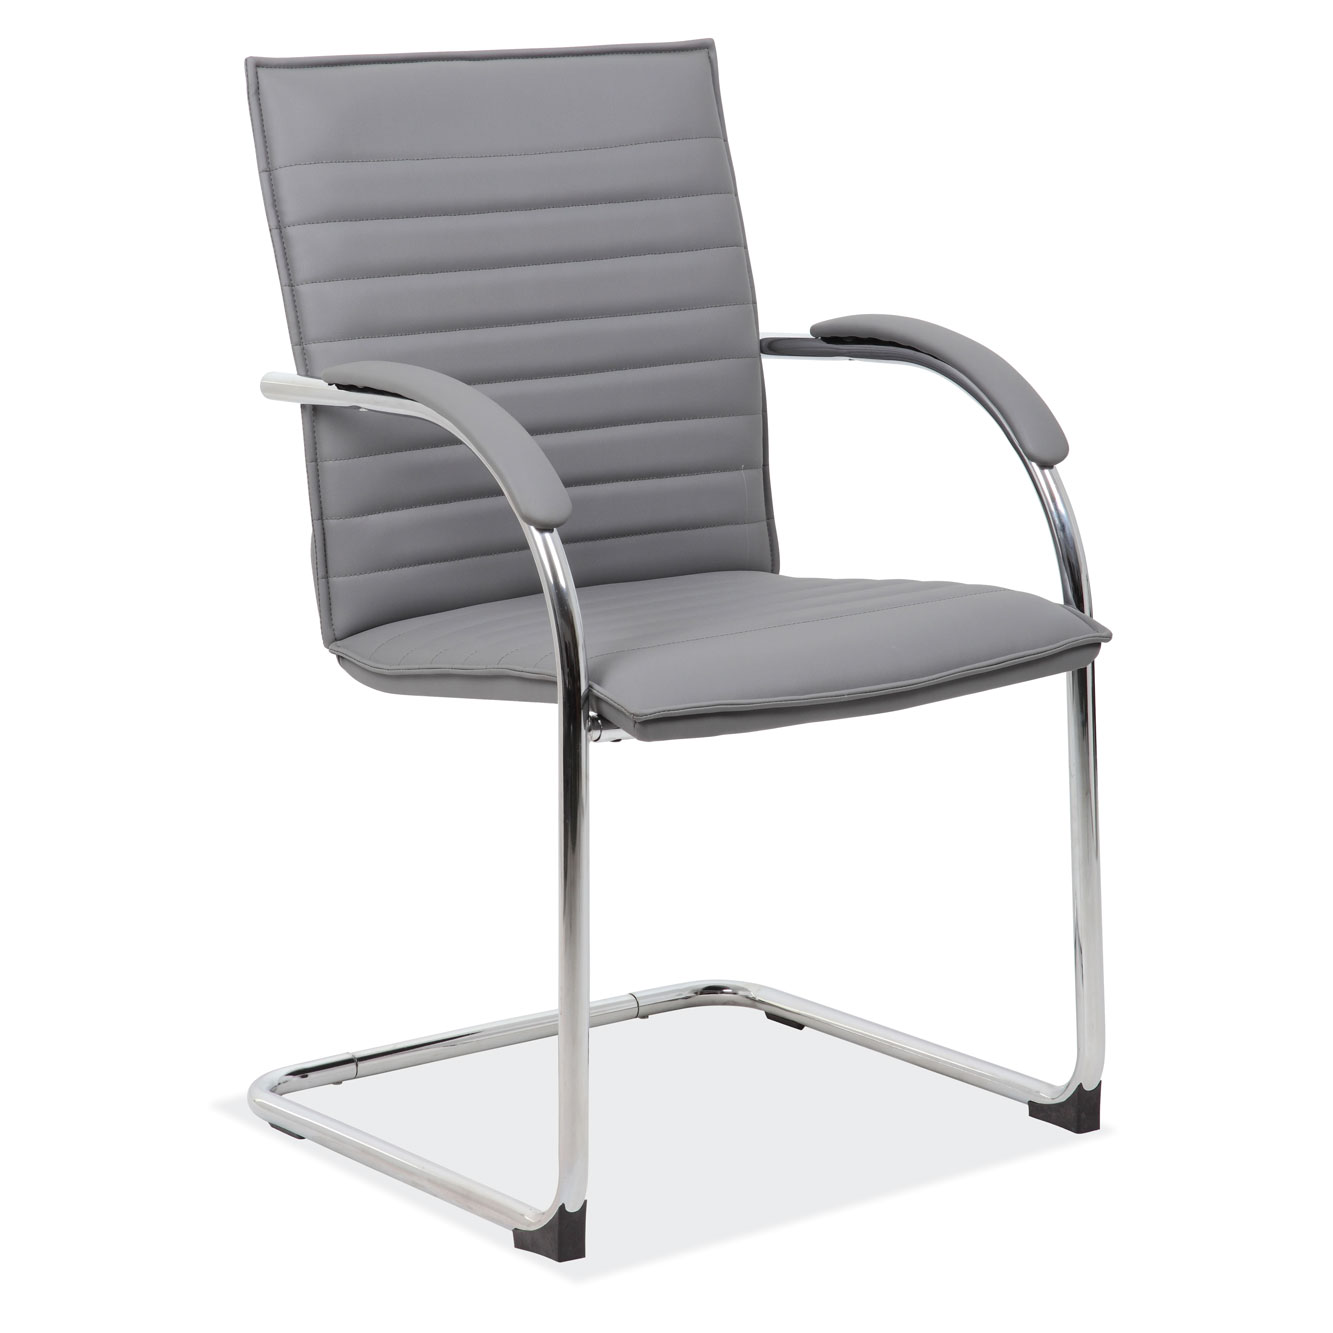 Sled Based Guest Chair with Chrome Frame